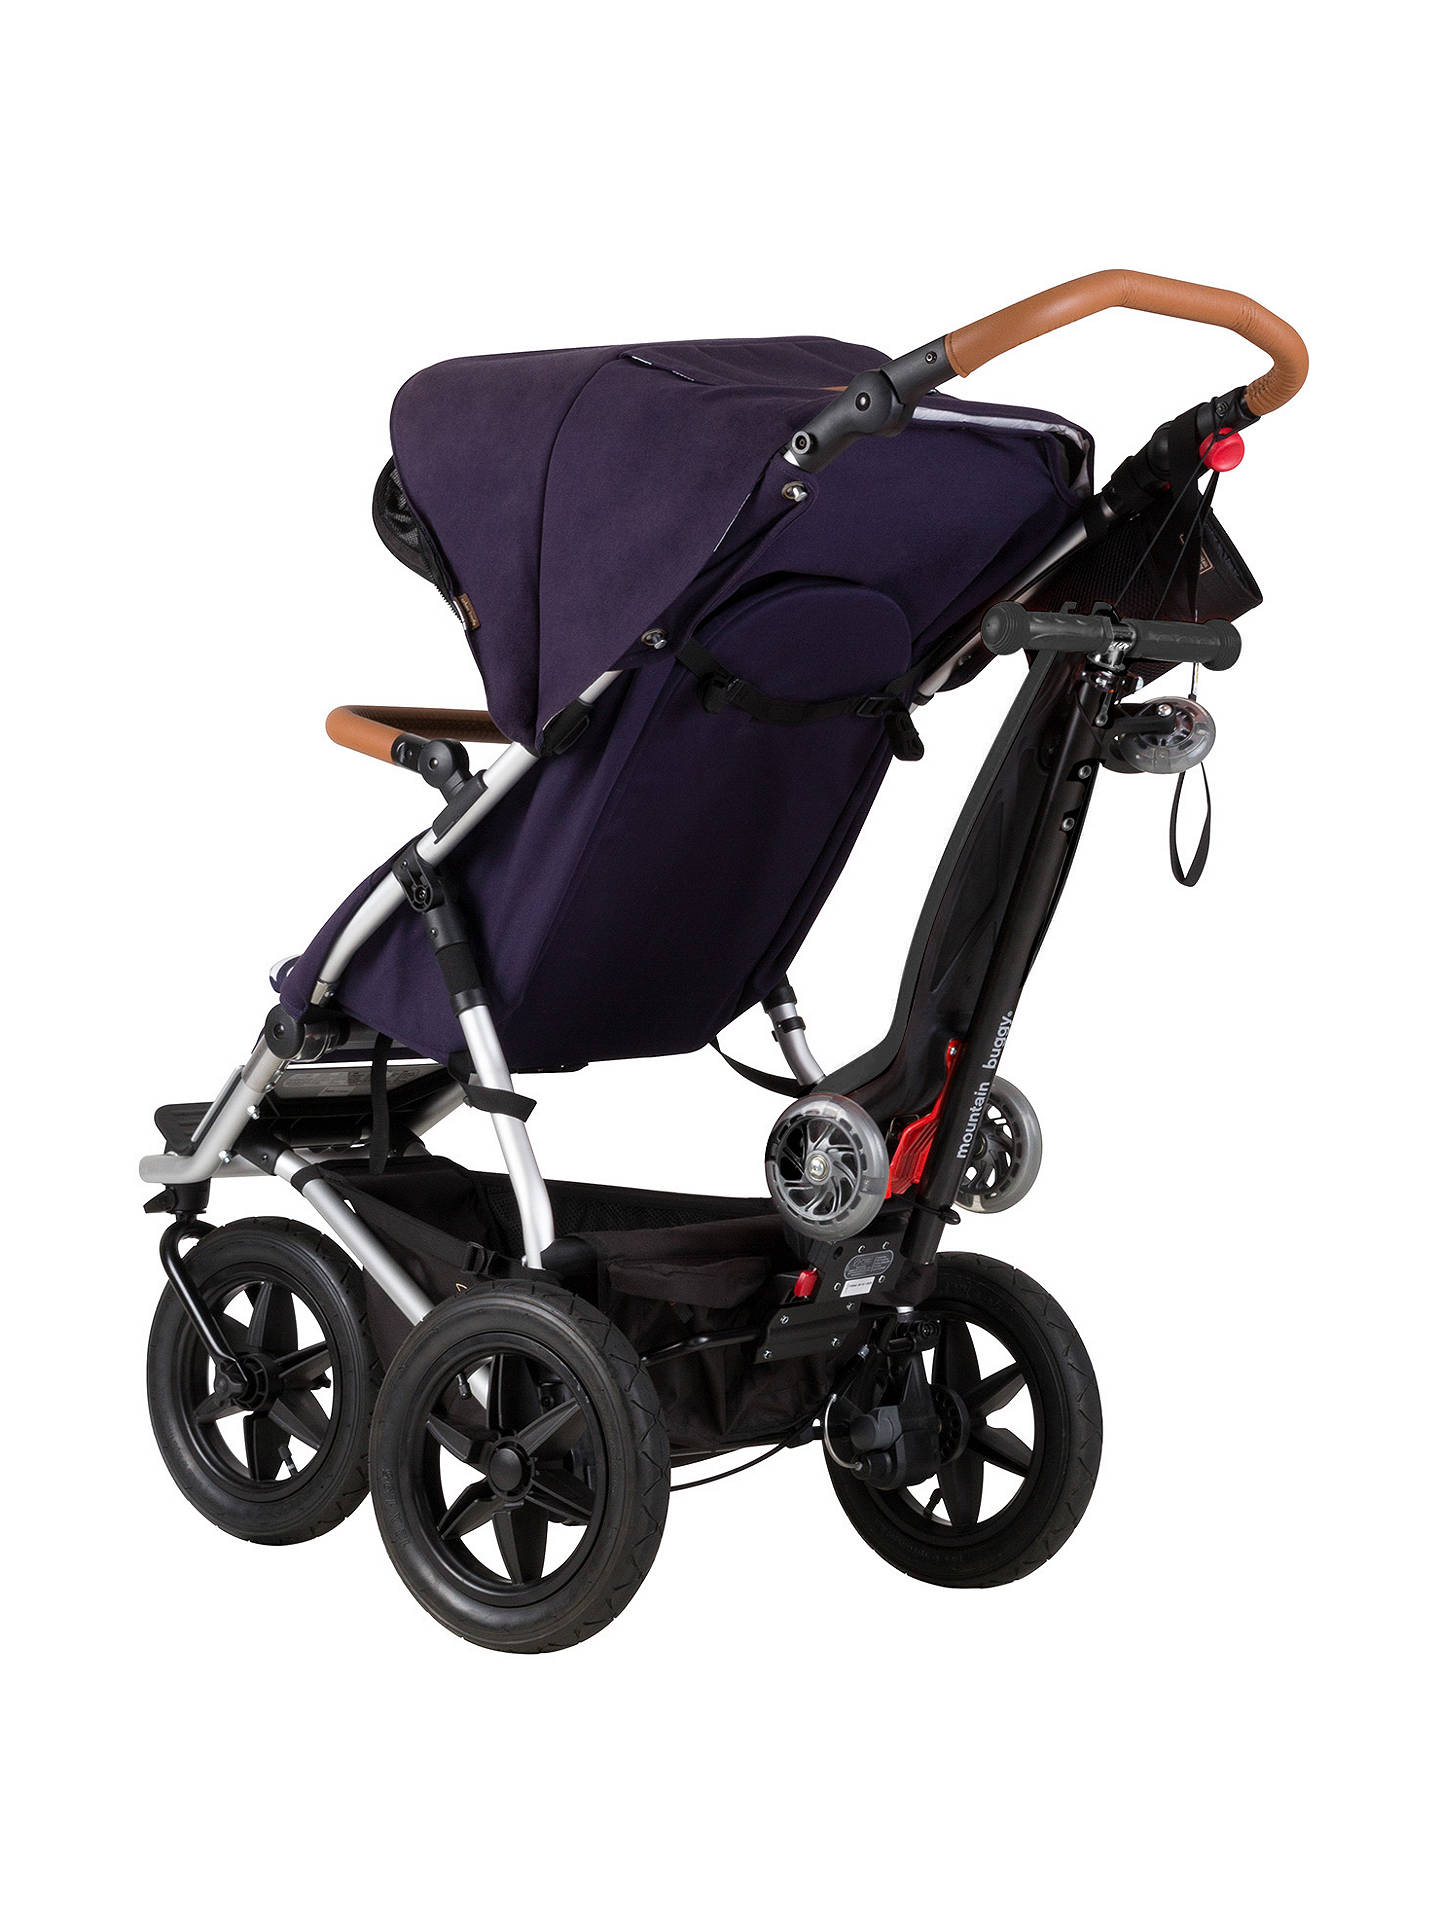 Mountain Buggy Freerider Buggy Board Scooter Black At